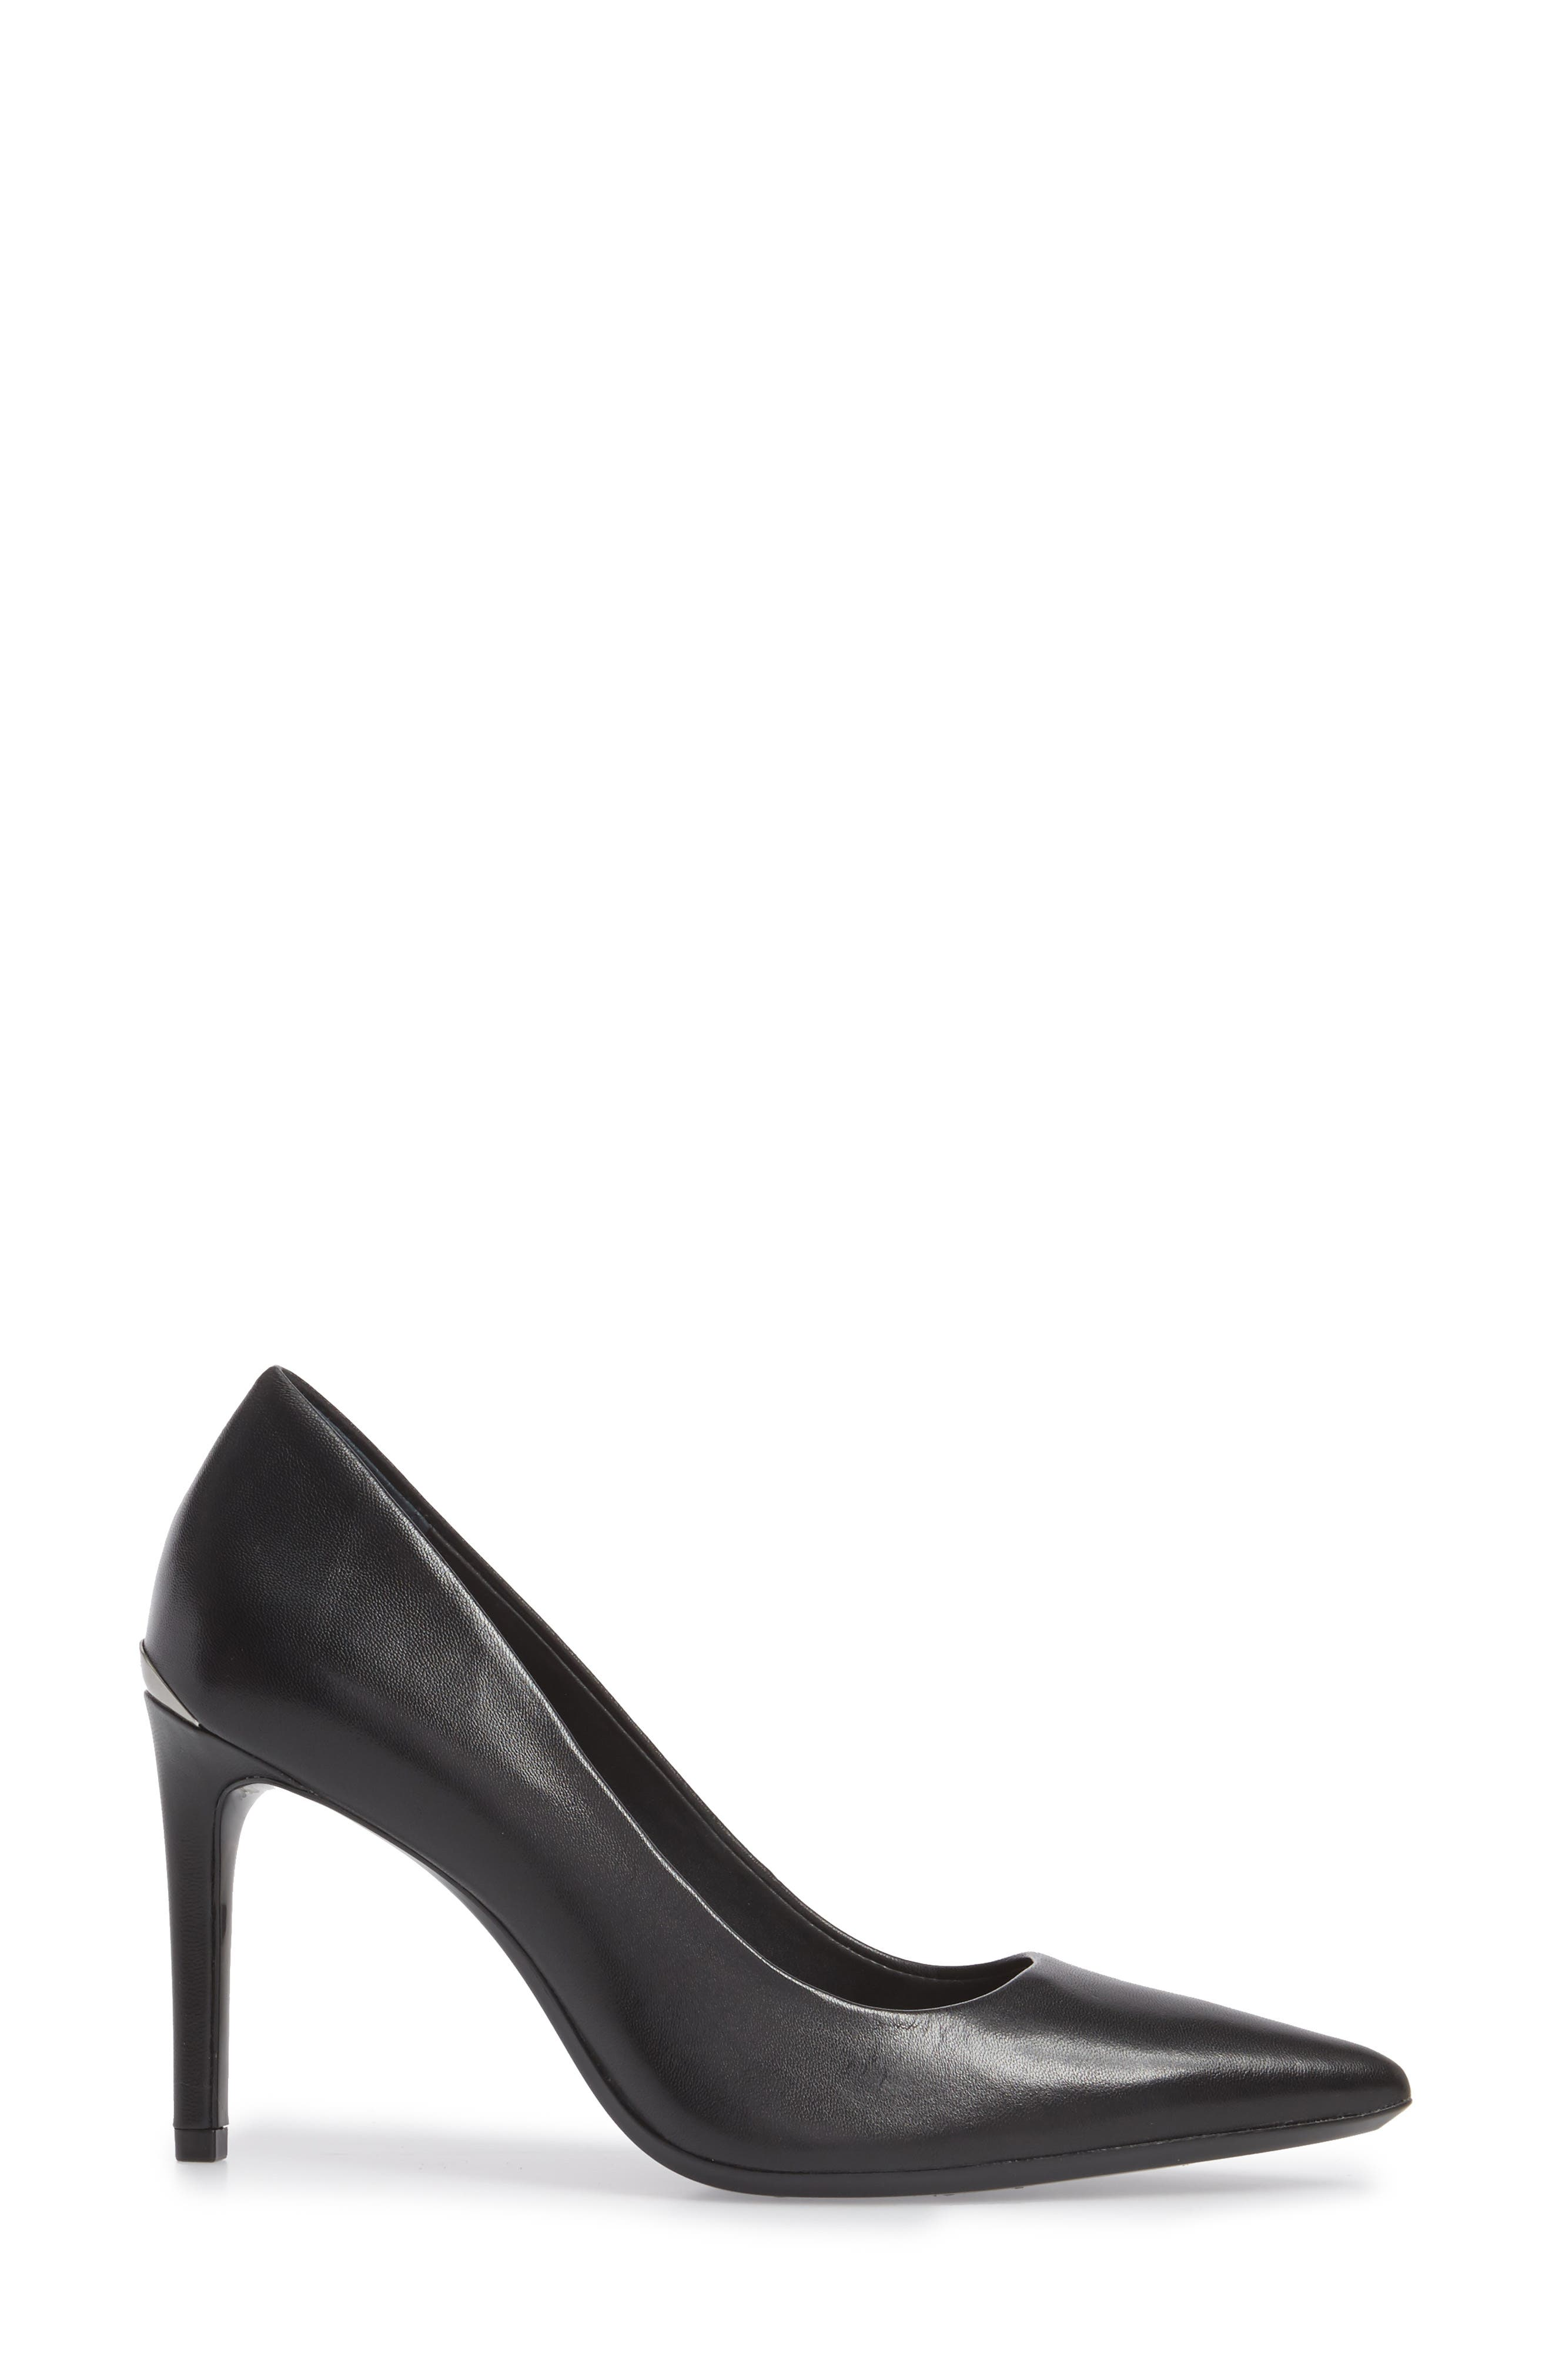 Ronna Pointy Toe Pump,                             Alternate thumbnail 3, color,                             BLACK LEATHER